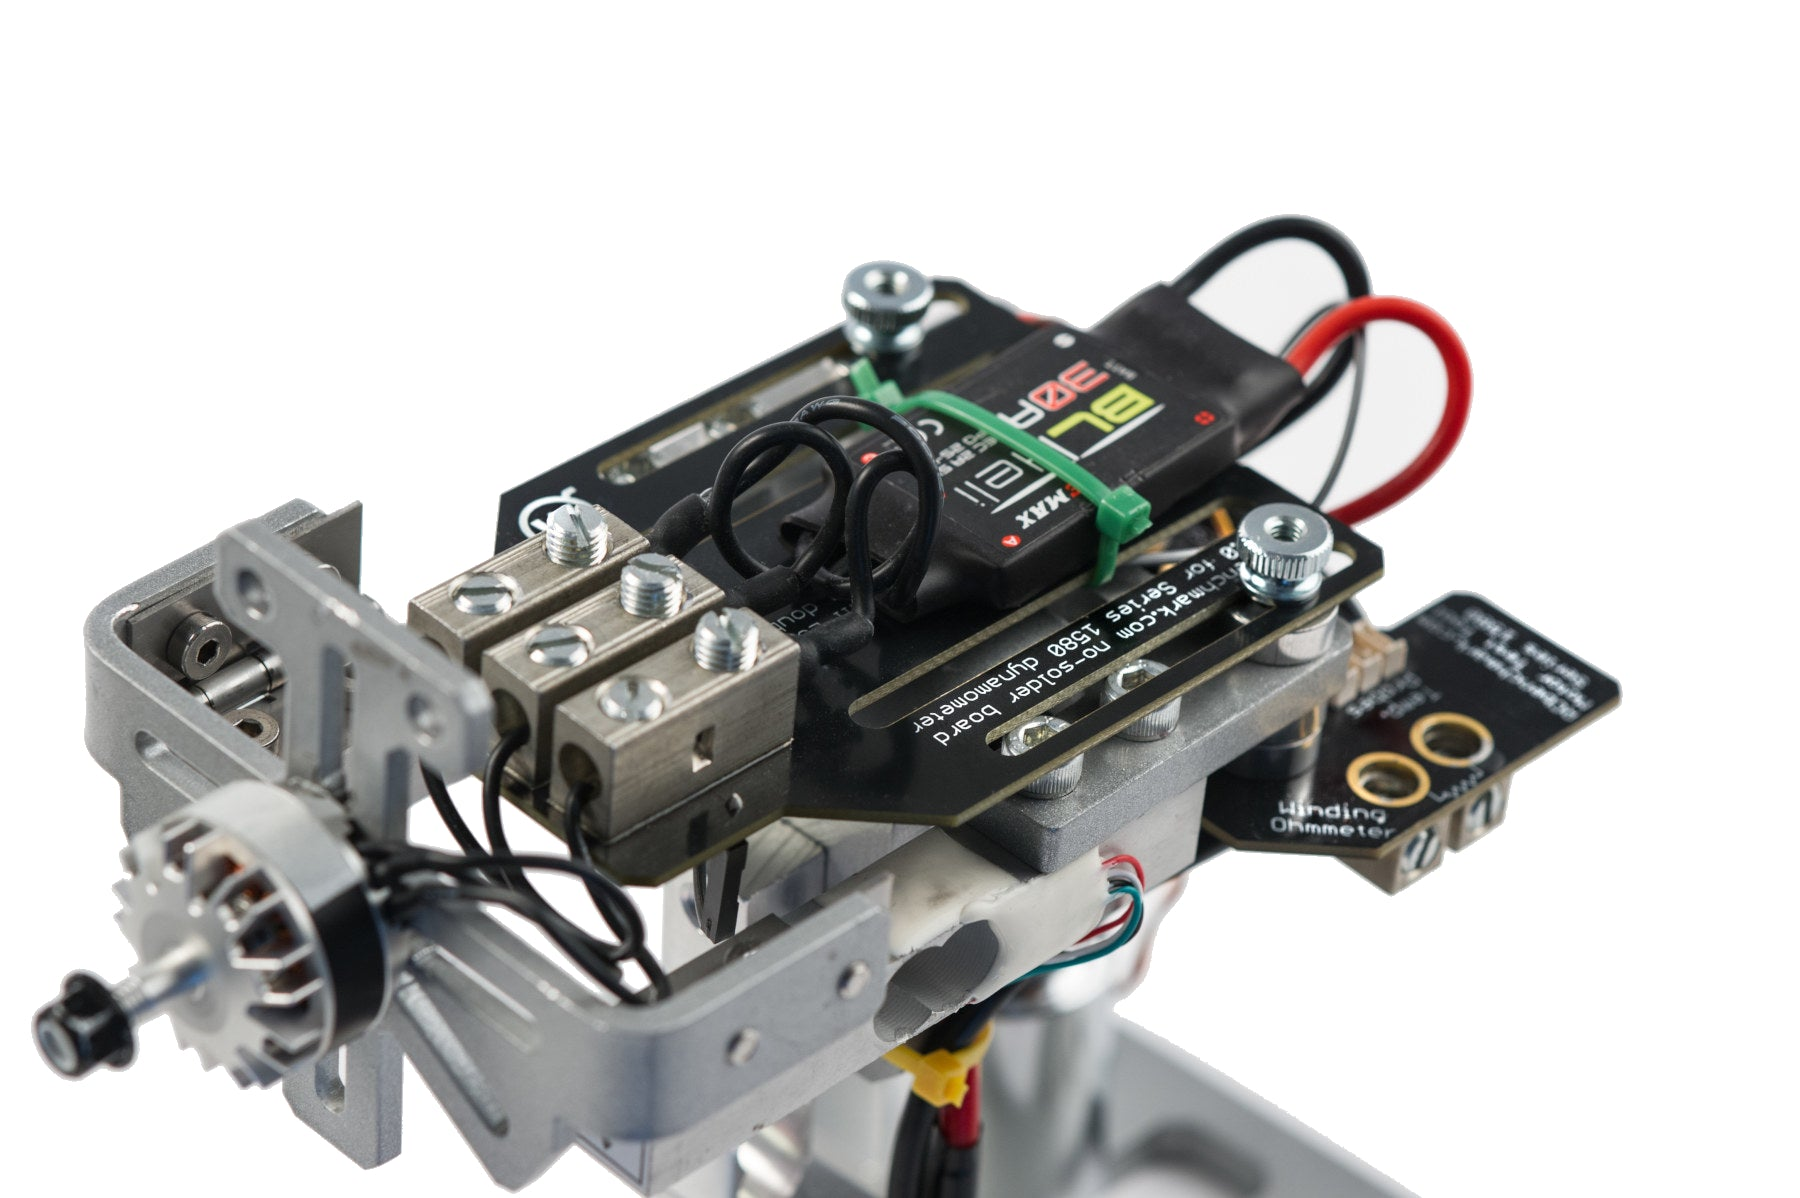 Series 1585 test stand hardware with ESC